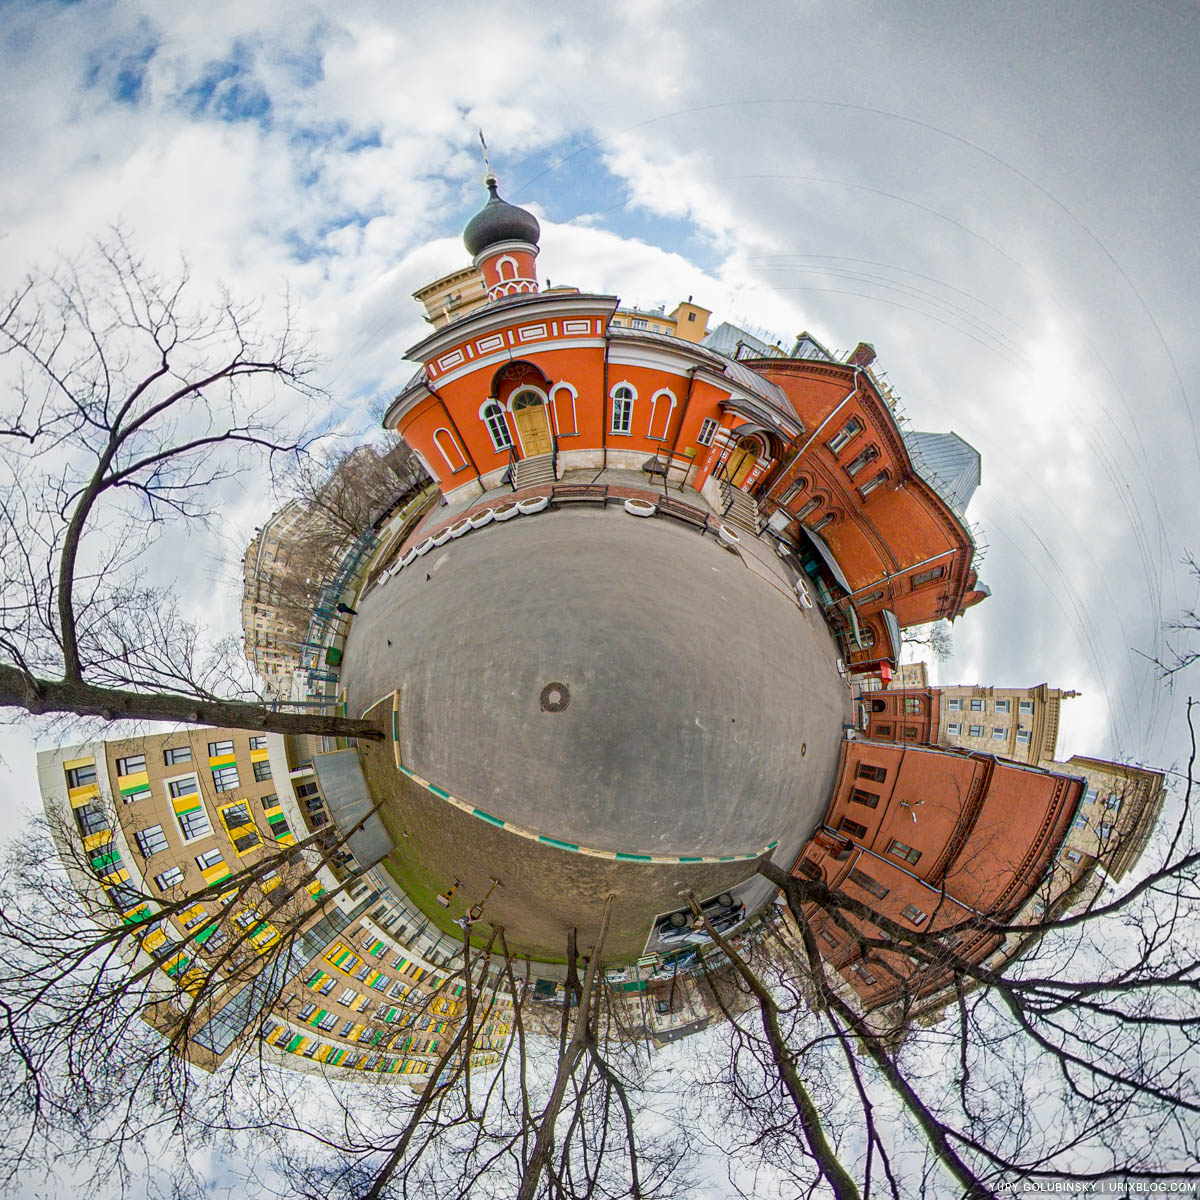 Church, polyclinic, hospital, littple planet, tiny planet, panorama, Moscow, Russia, 2020